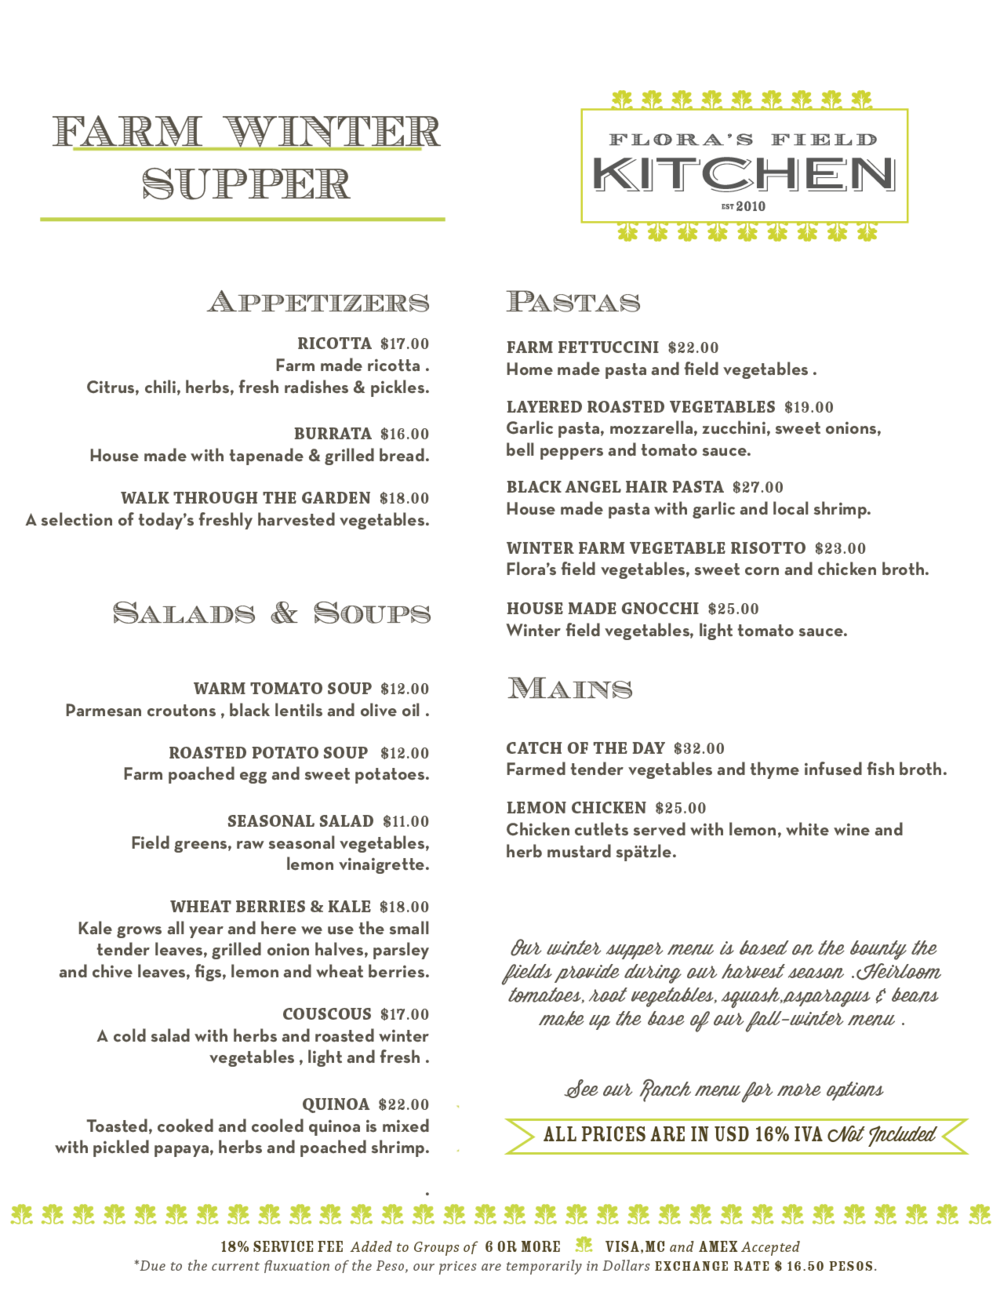 Winter Supper Menu